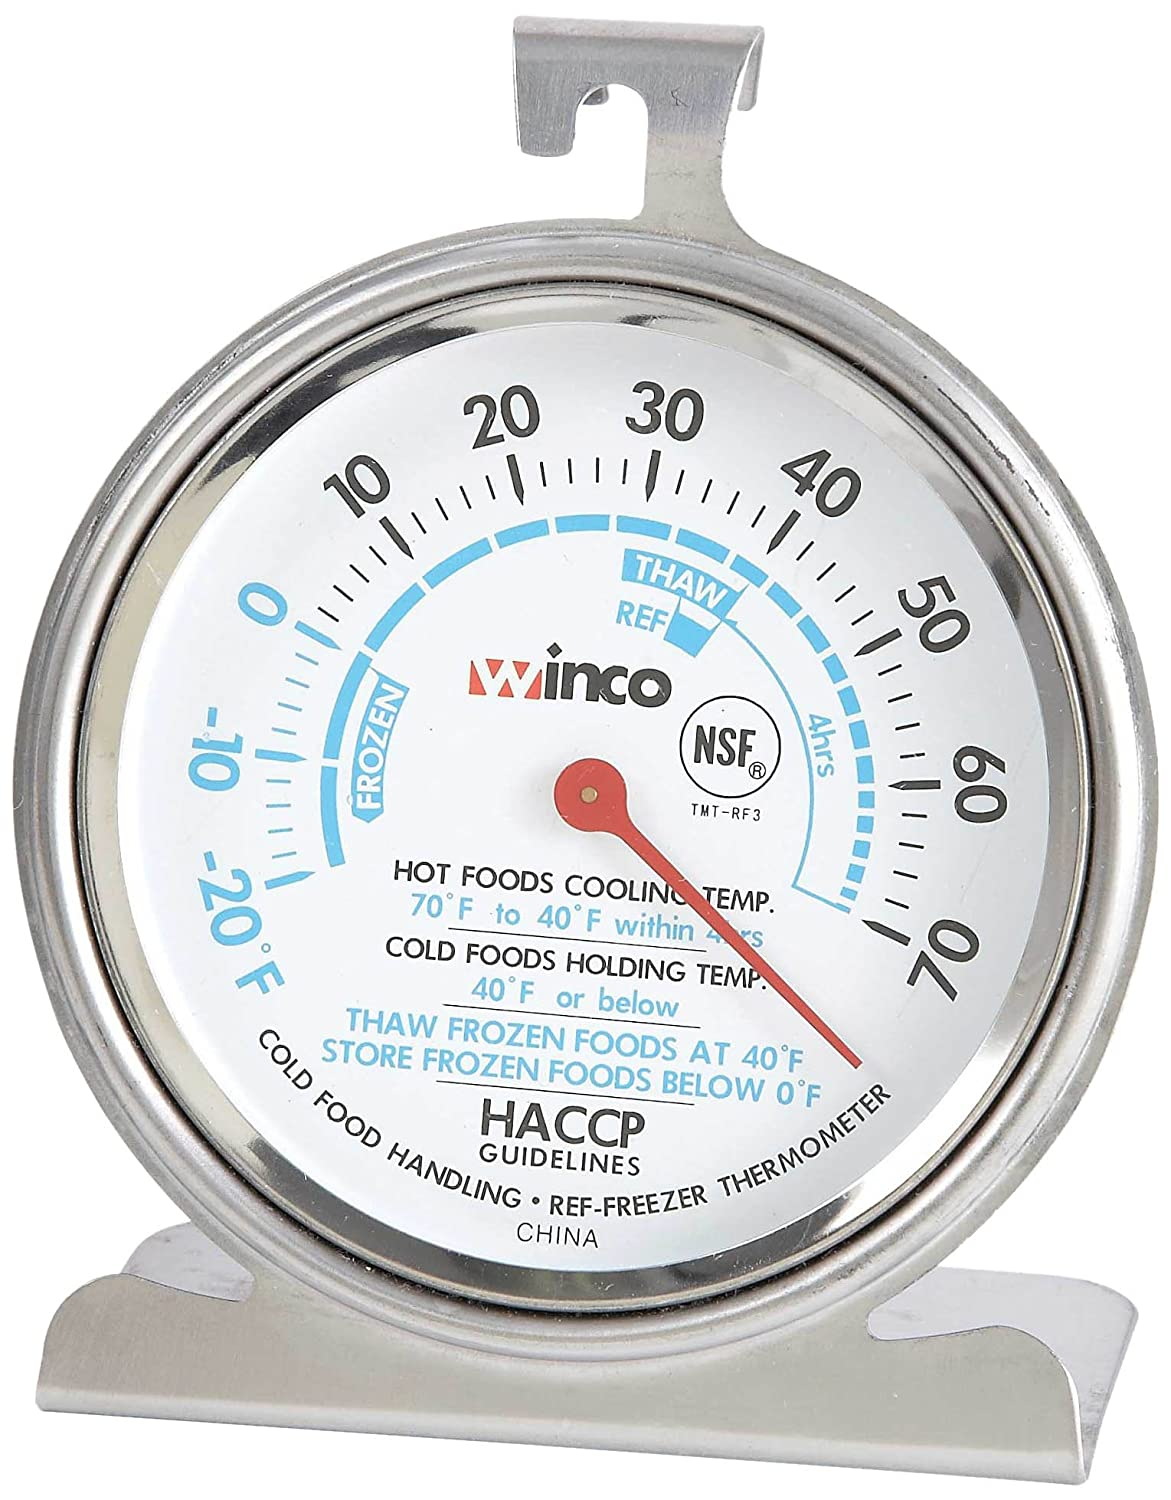 Winco Dial Refrigerator/Freezer Thermometer with Hook and Panel Base, 3-Inch Winco USA TMT-RF3